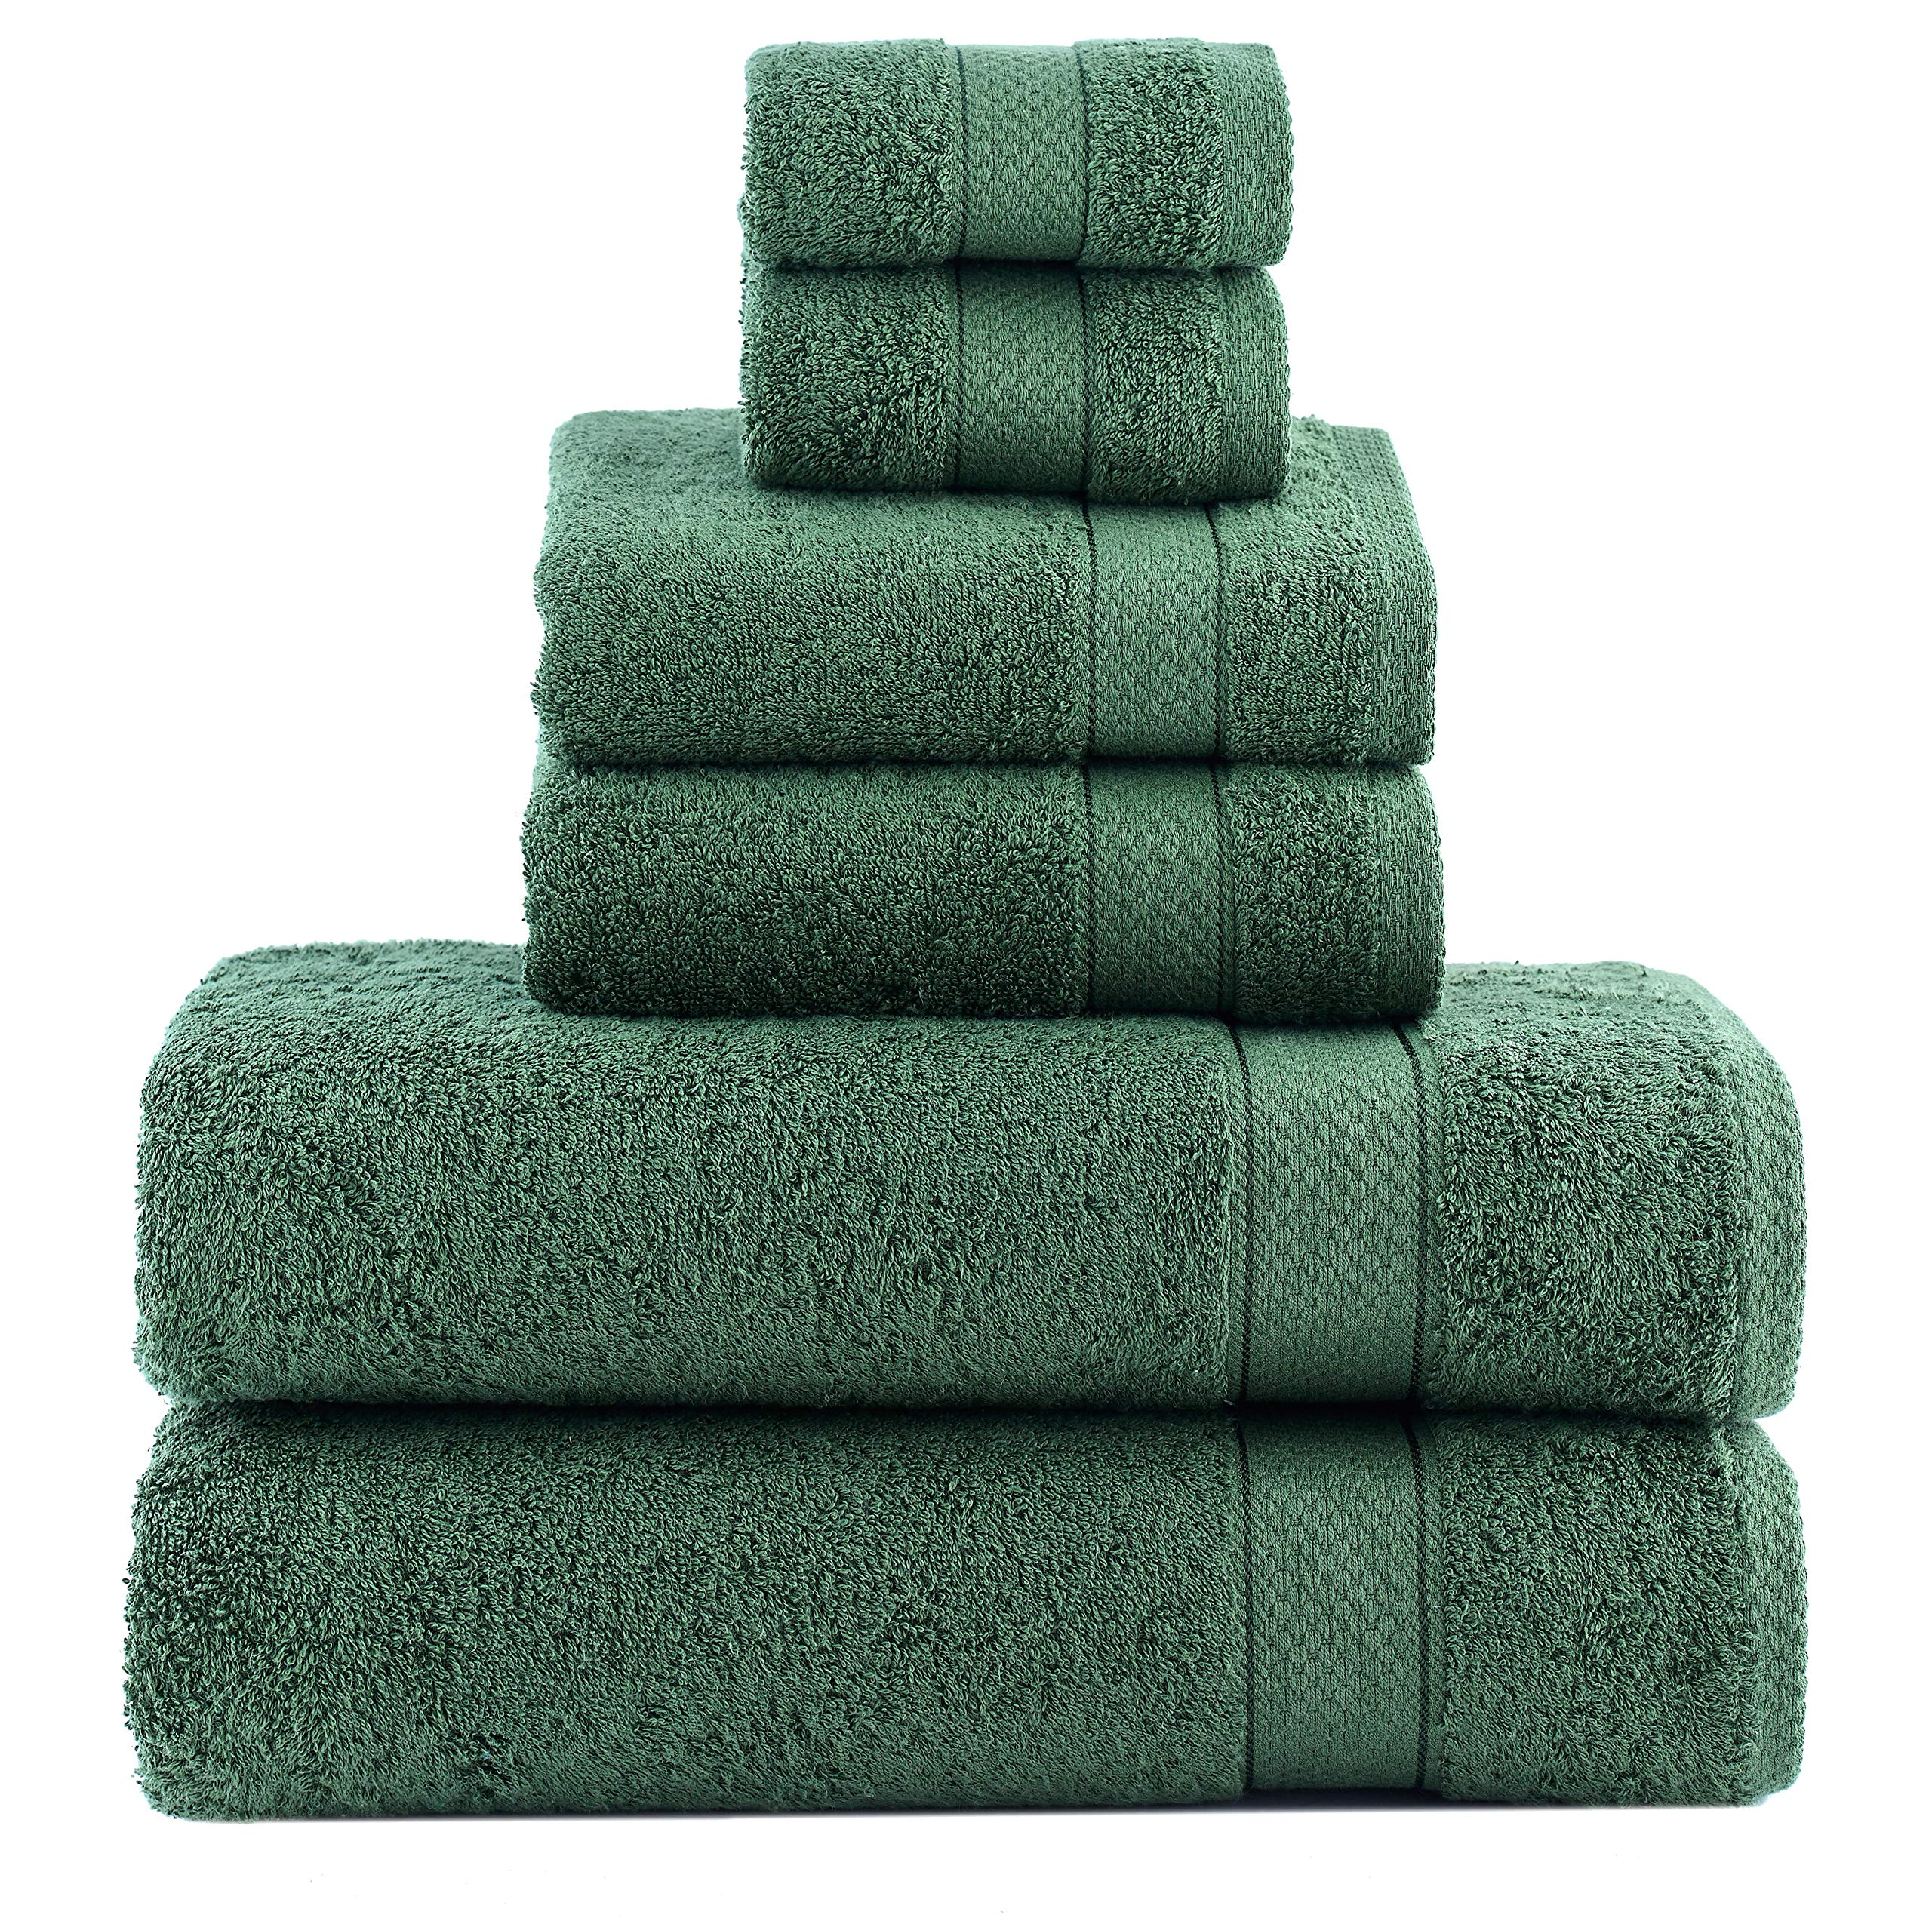 ixirhome Turkish Towel Set 6 Piece,100% Cotton, 2 Bath Towels, 2 Hand Towels and 2 Washcloths, Machine Washable, Hotel Quality, Super Soft and Highly Absorbent by (Forest Green)